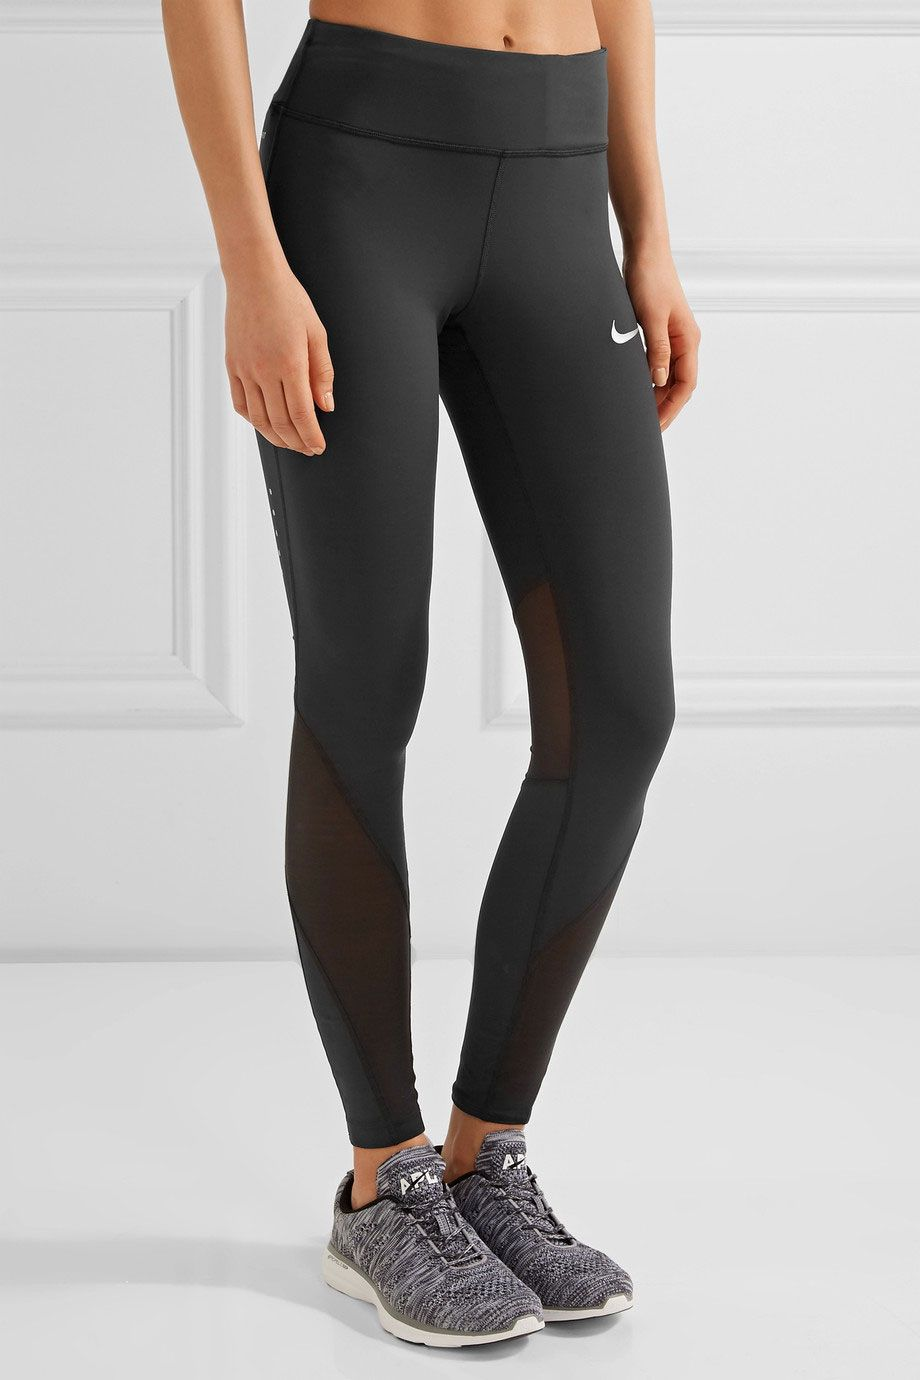 Nike Power Epic Lux Dri-FIT Stretch Leggings